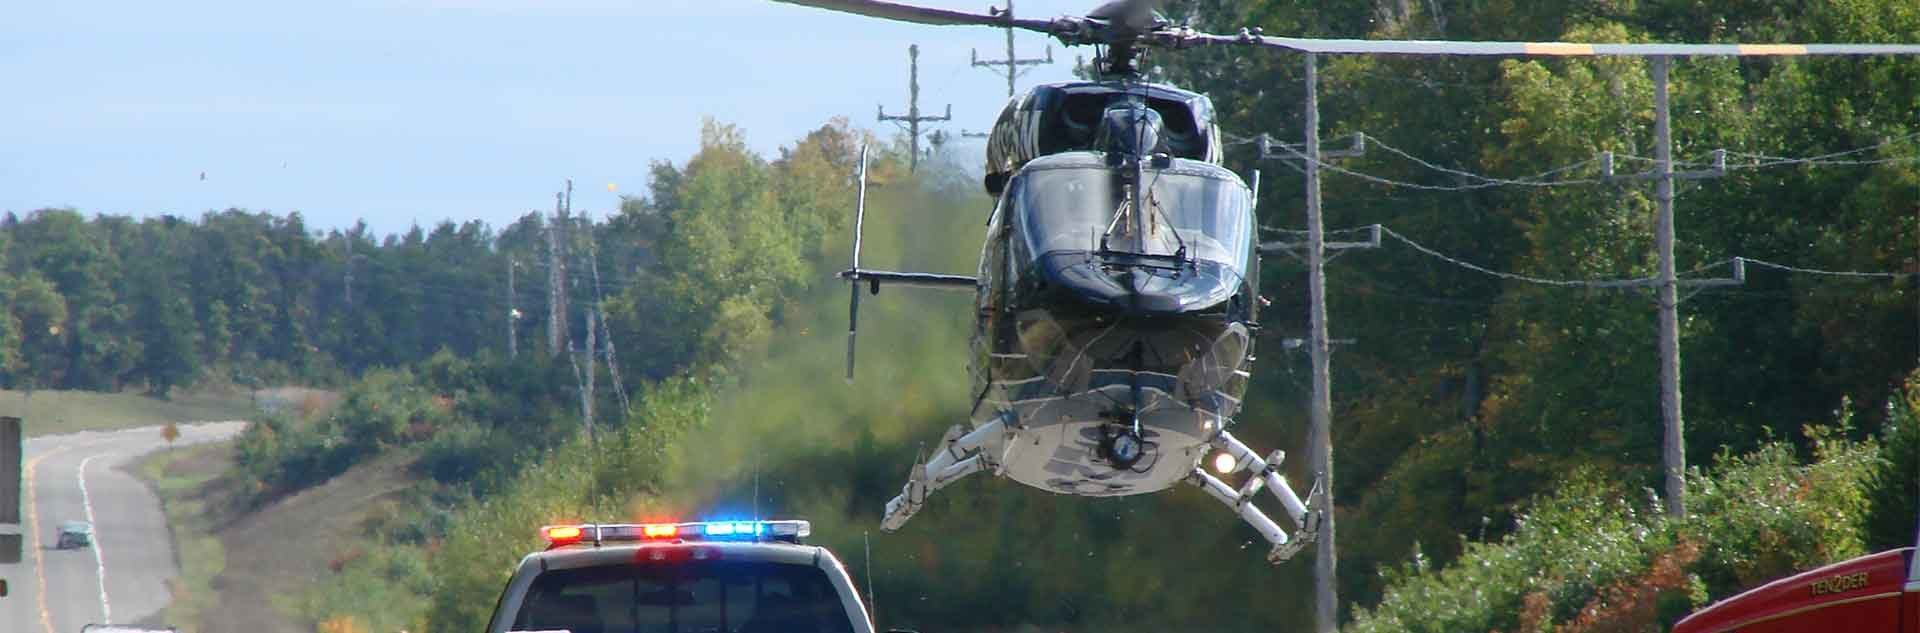 Douglas County Sheriff helicopter.